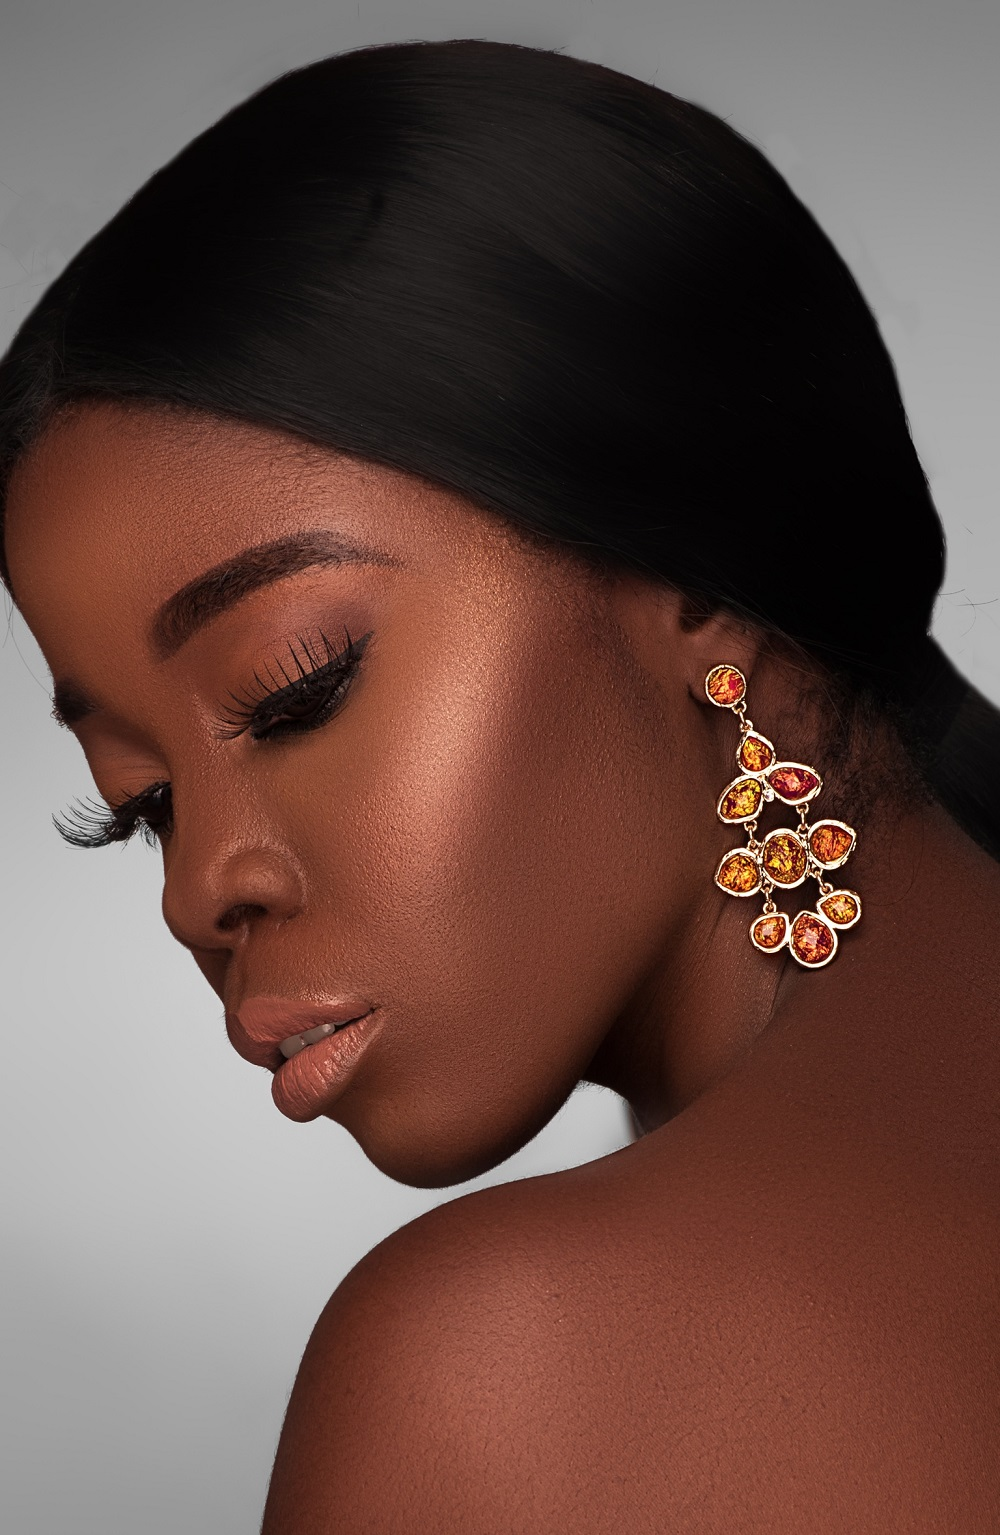 Béatrice Accessories Just Released Special Occasion Earrings You'll Want to Wear Every Day